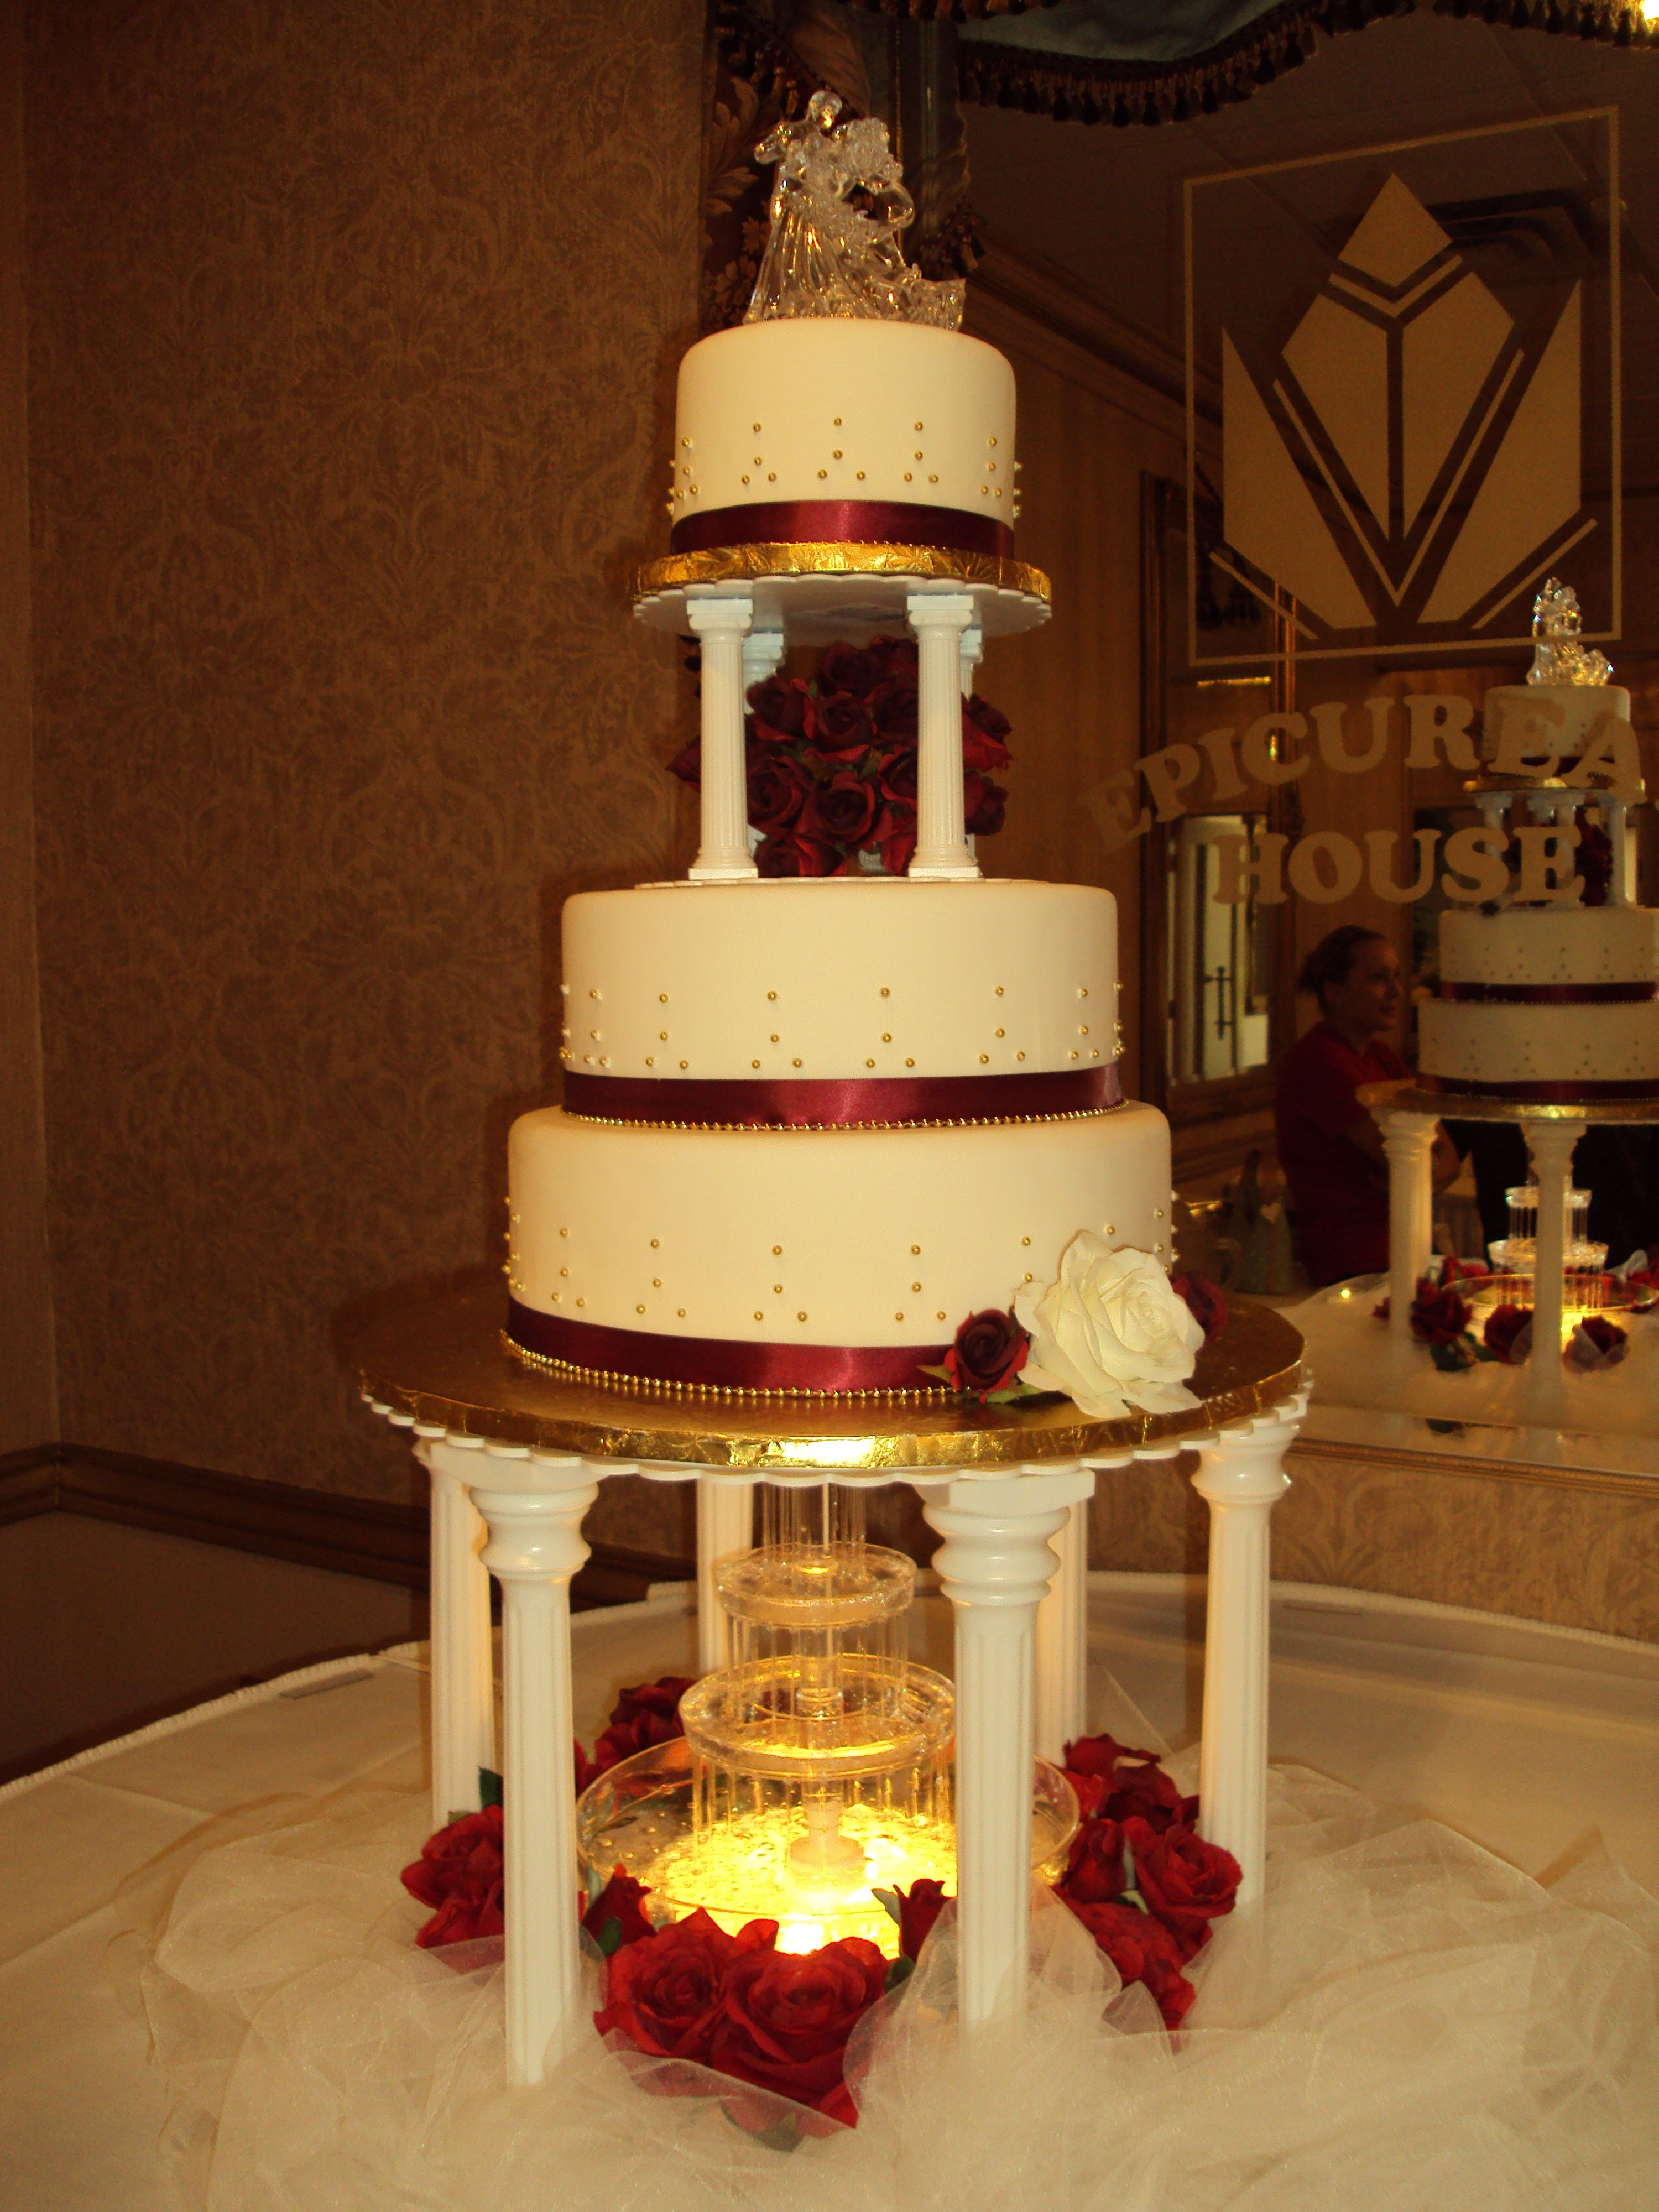 Amazing Y Wedding Cake Toppers Thick 50th Wedding Anniversary Cake Ideas Rectangular Alternative Wedding Cakes Funny Cake Toppers Wedding Young Wedding Cake With Red Roses DarkLas Vegas Wedding Cakes Fountain Wedding Cake   Fountain Wedding Cake I Did Yesterday ..